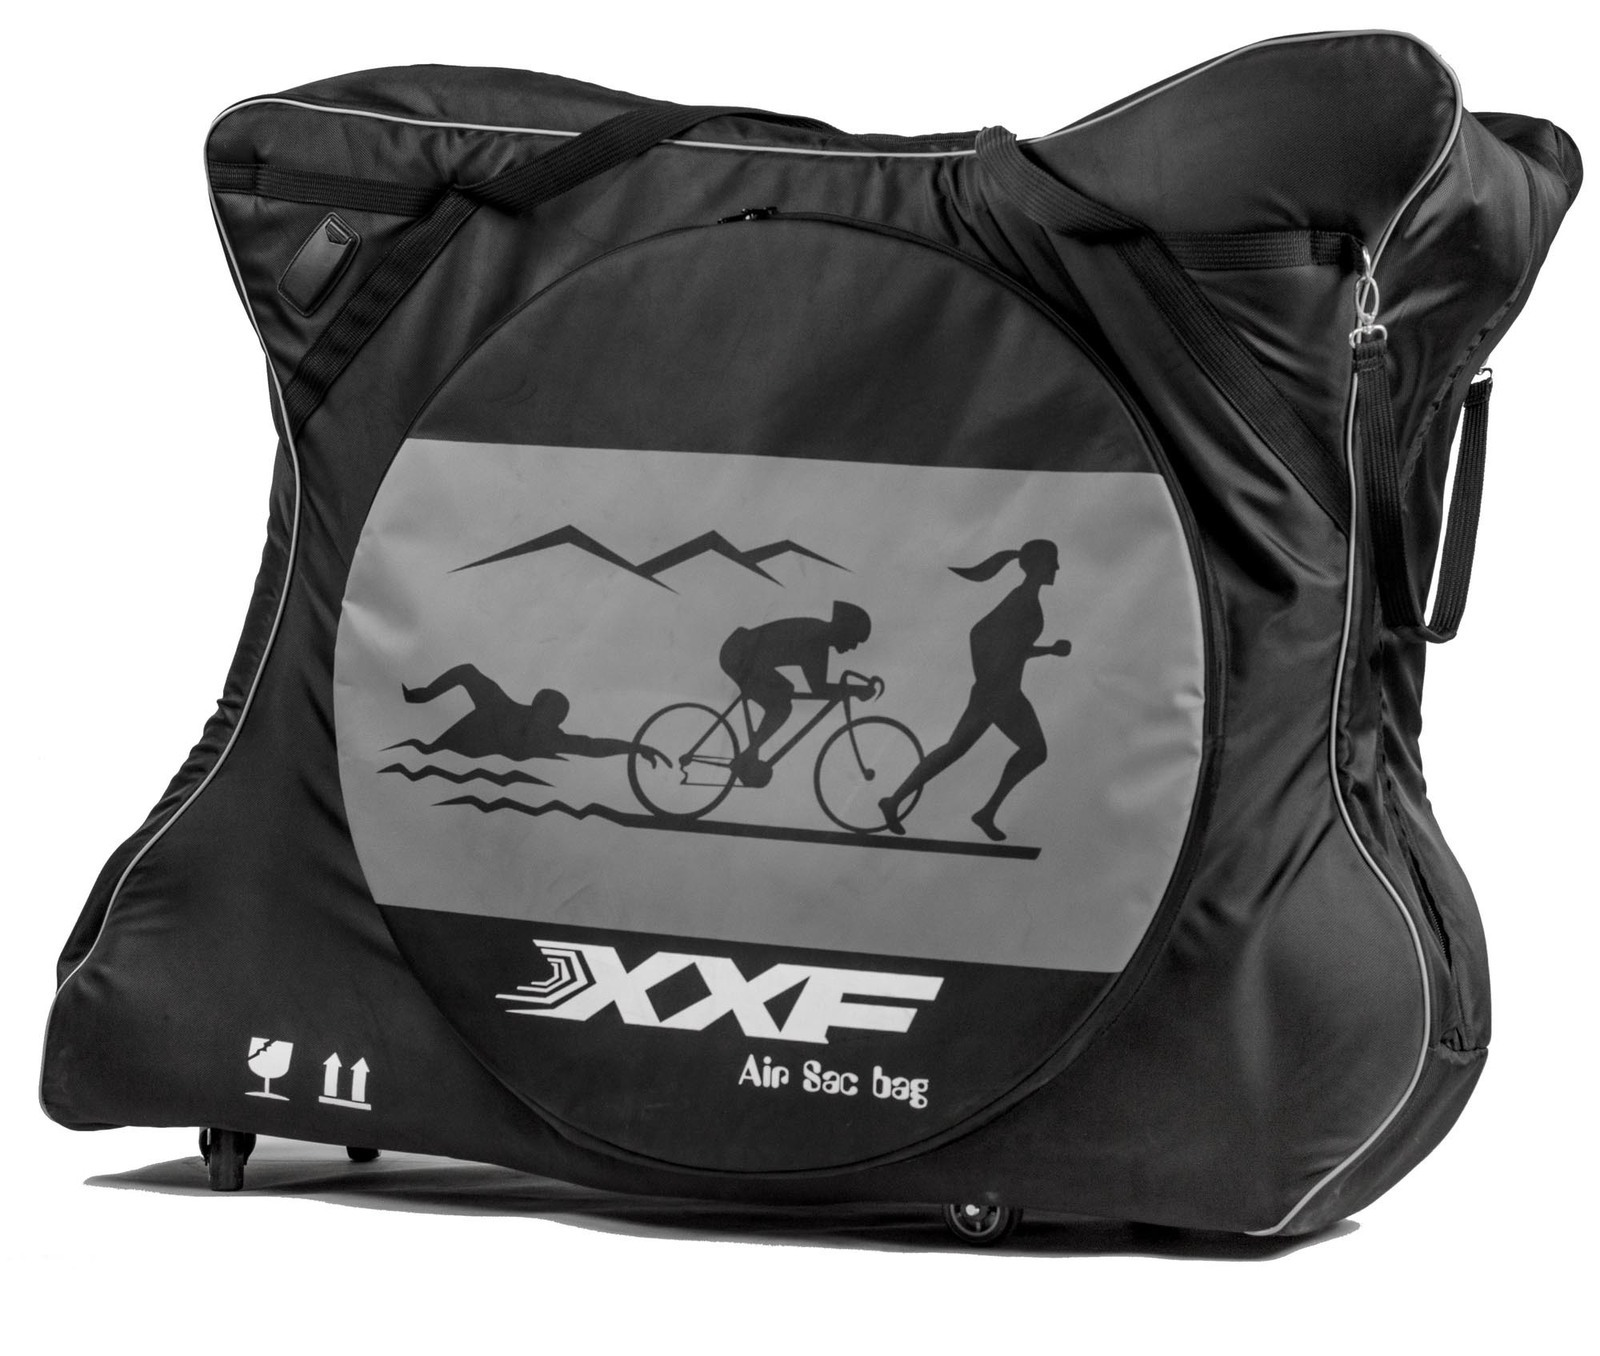 Buy XXF Bicycle Transport Travel Case Bag For 700c Road ...